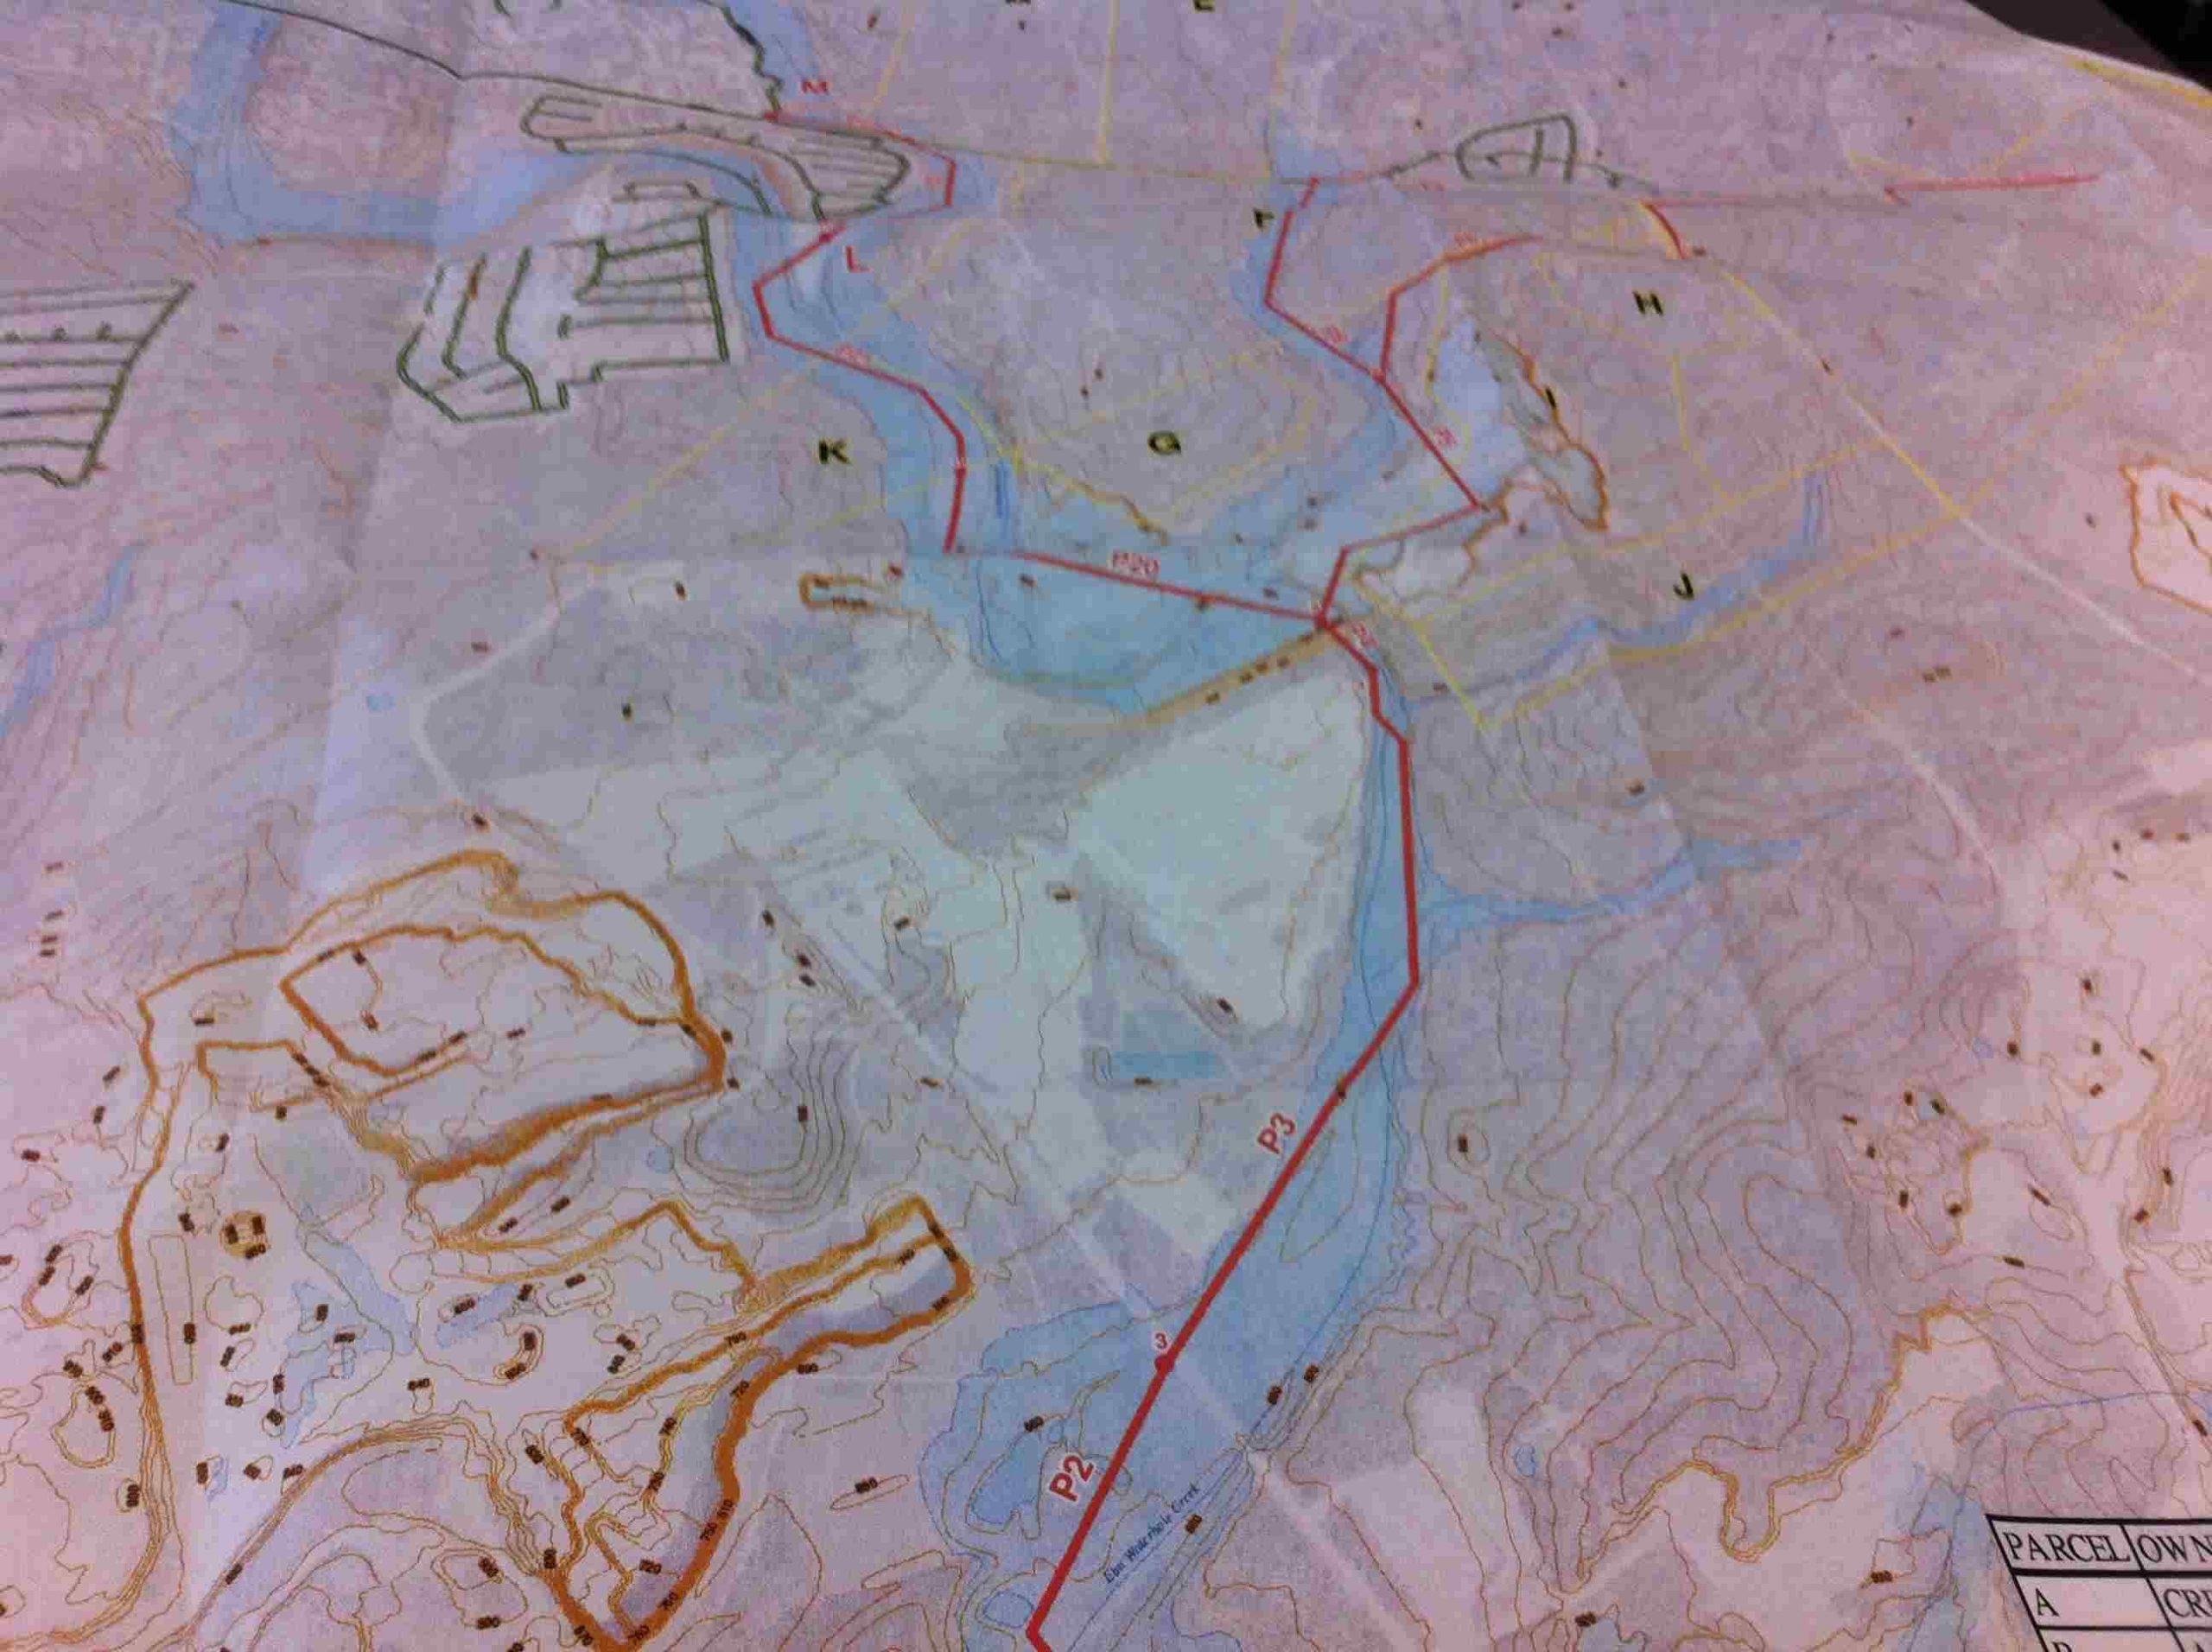 Sewer line in Elm Hole Creek (in red) proposed to serve Crescent Hills. Photo of SAWS map courtesy of GEAA.